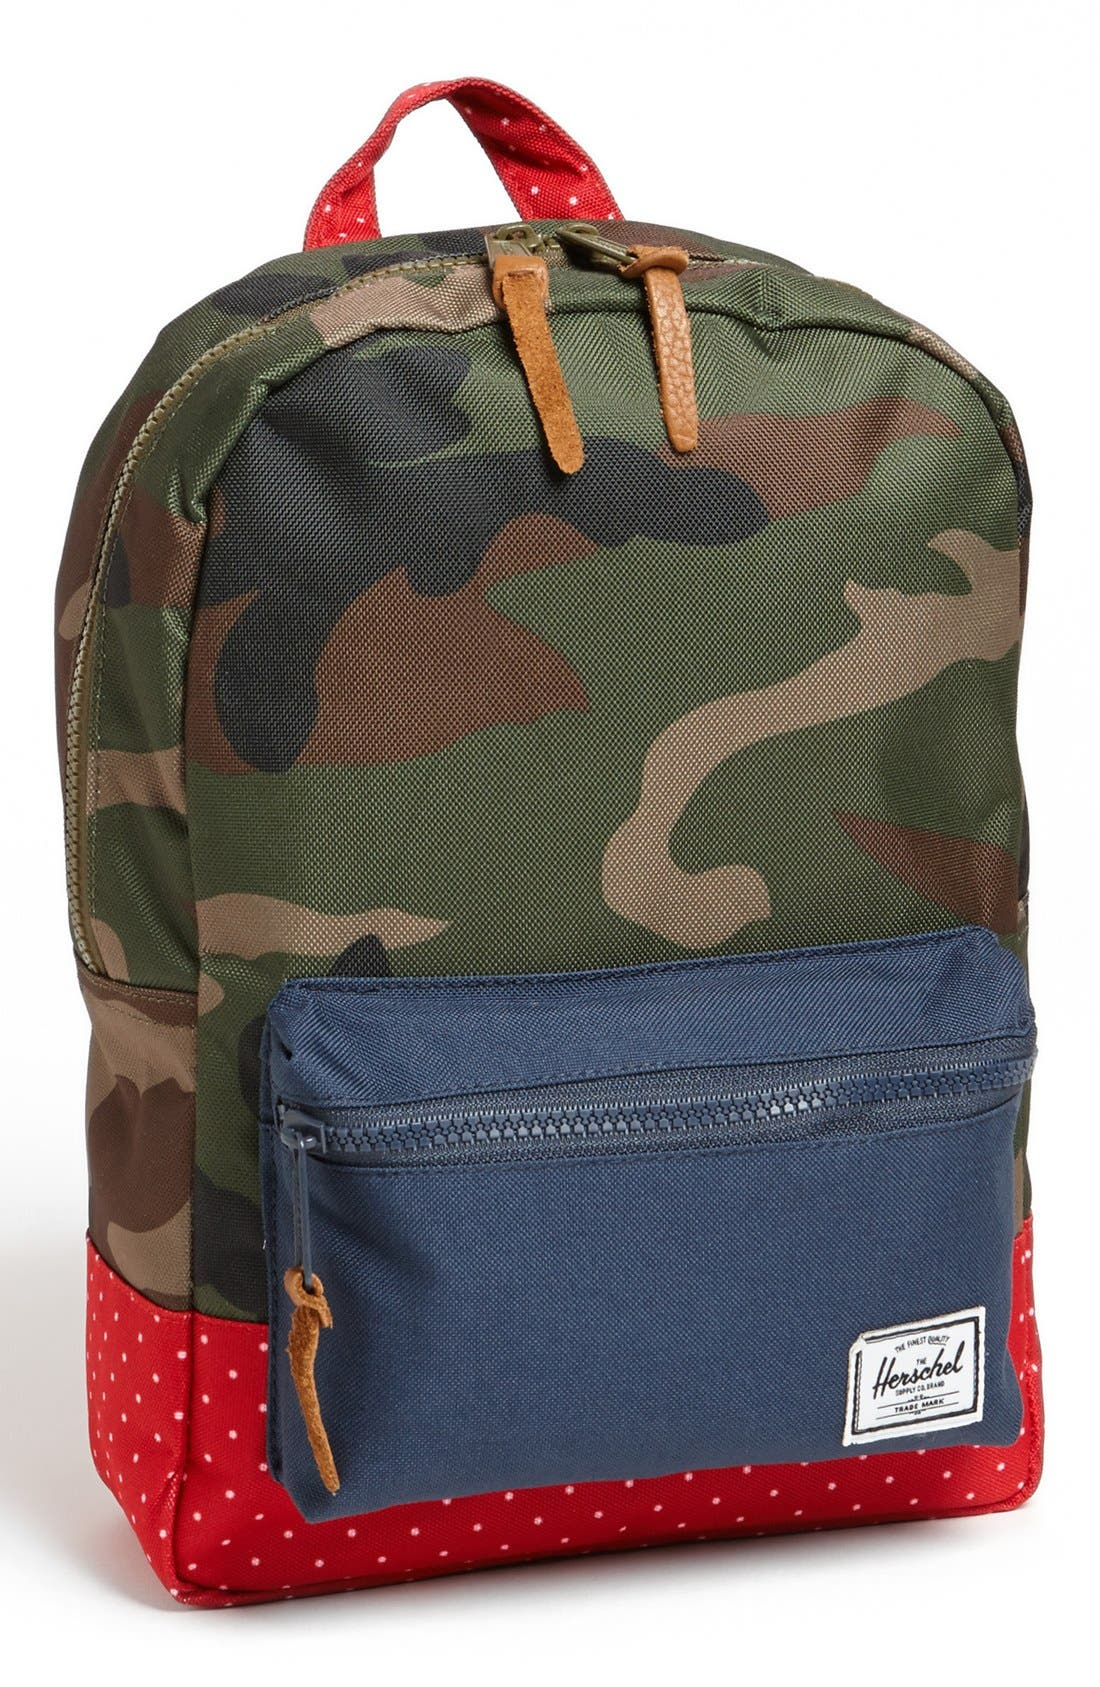 Alternate Image 1 Selected - Herschel Supply Co. 'Settlement' Backpack (Toddler Girls)